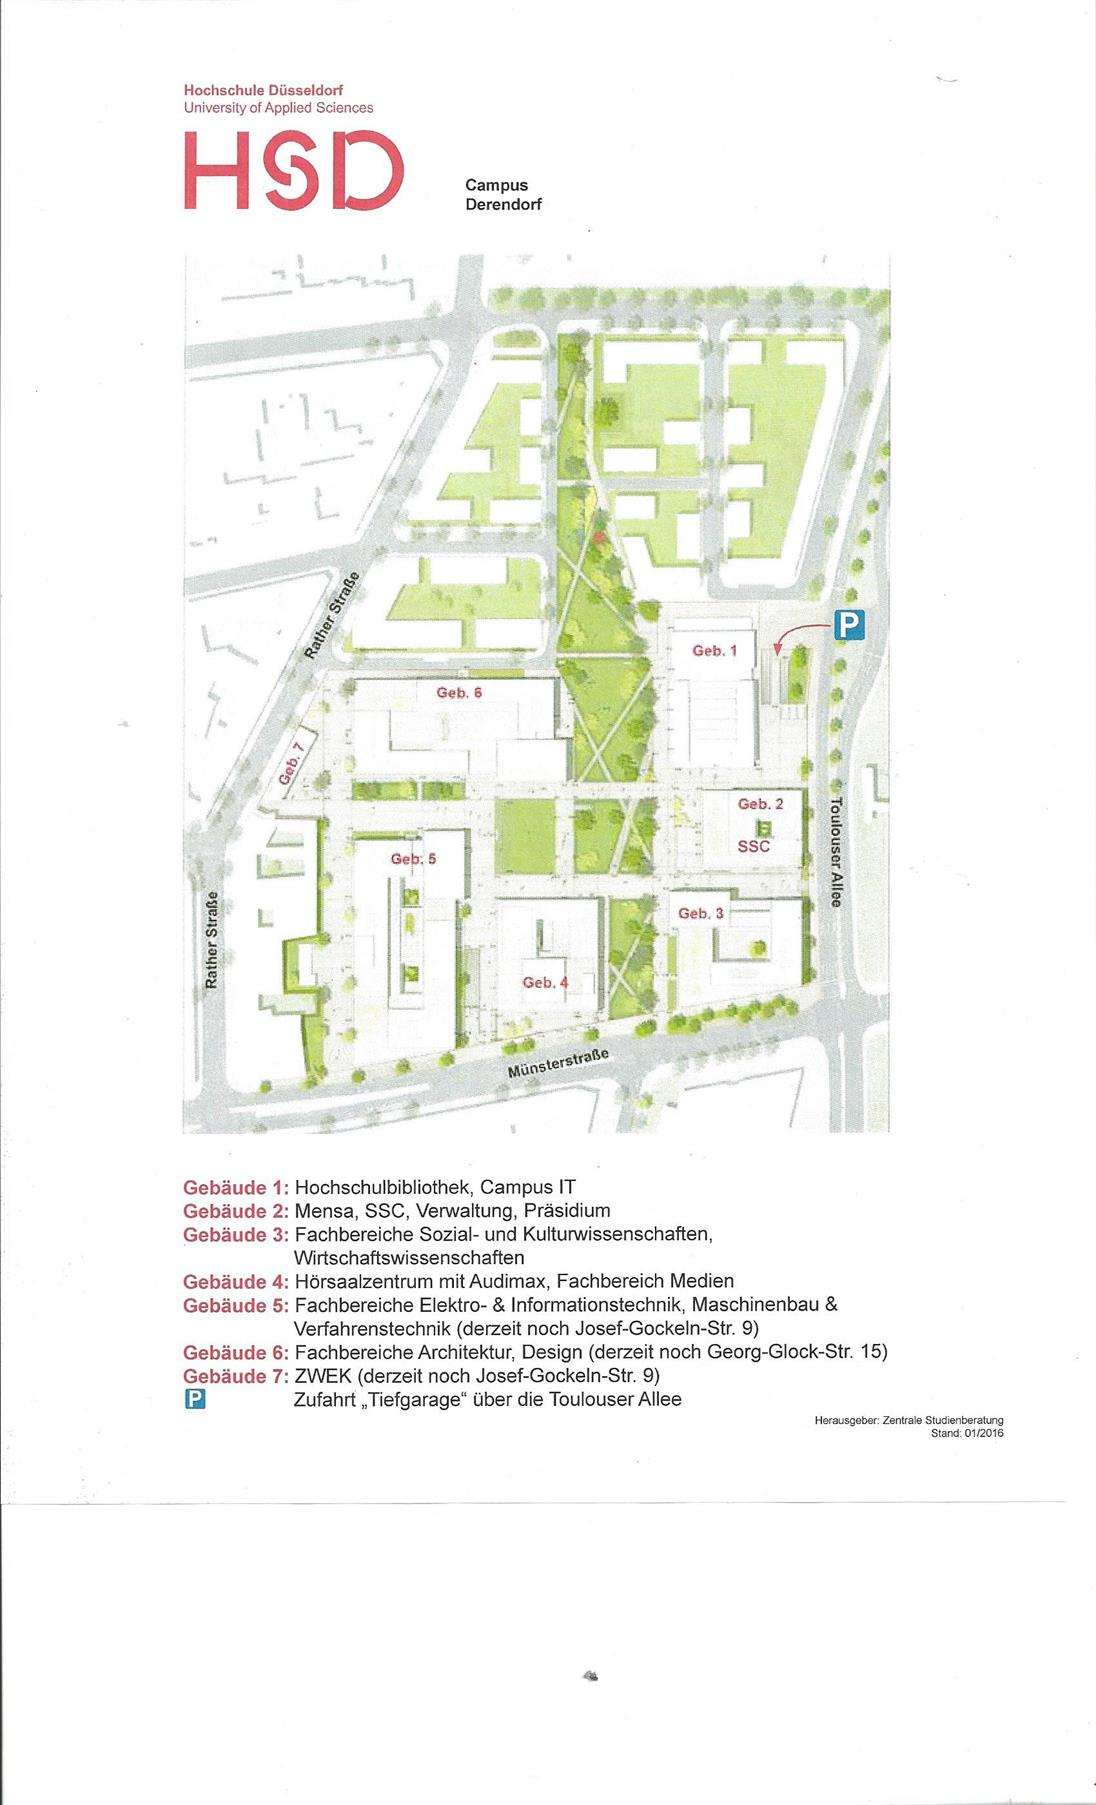 Map of Campus Derendorf